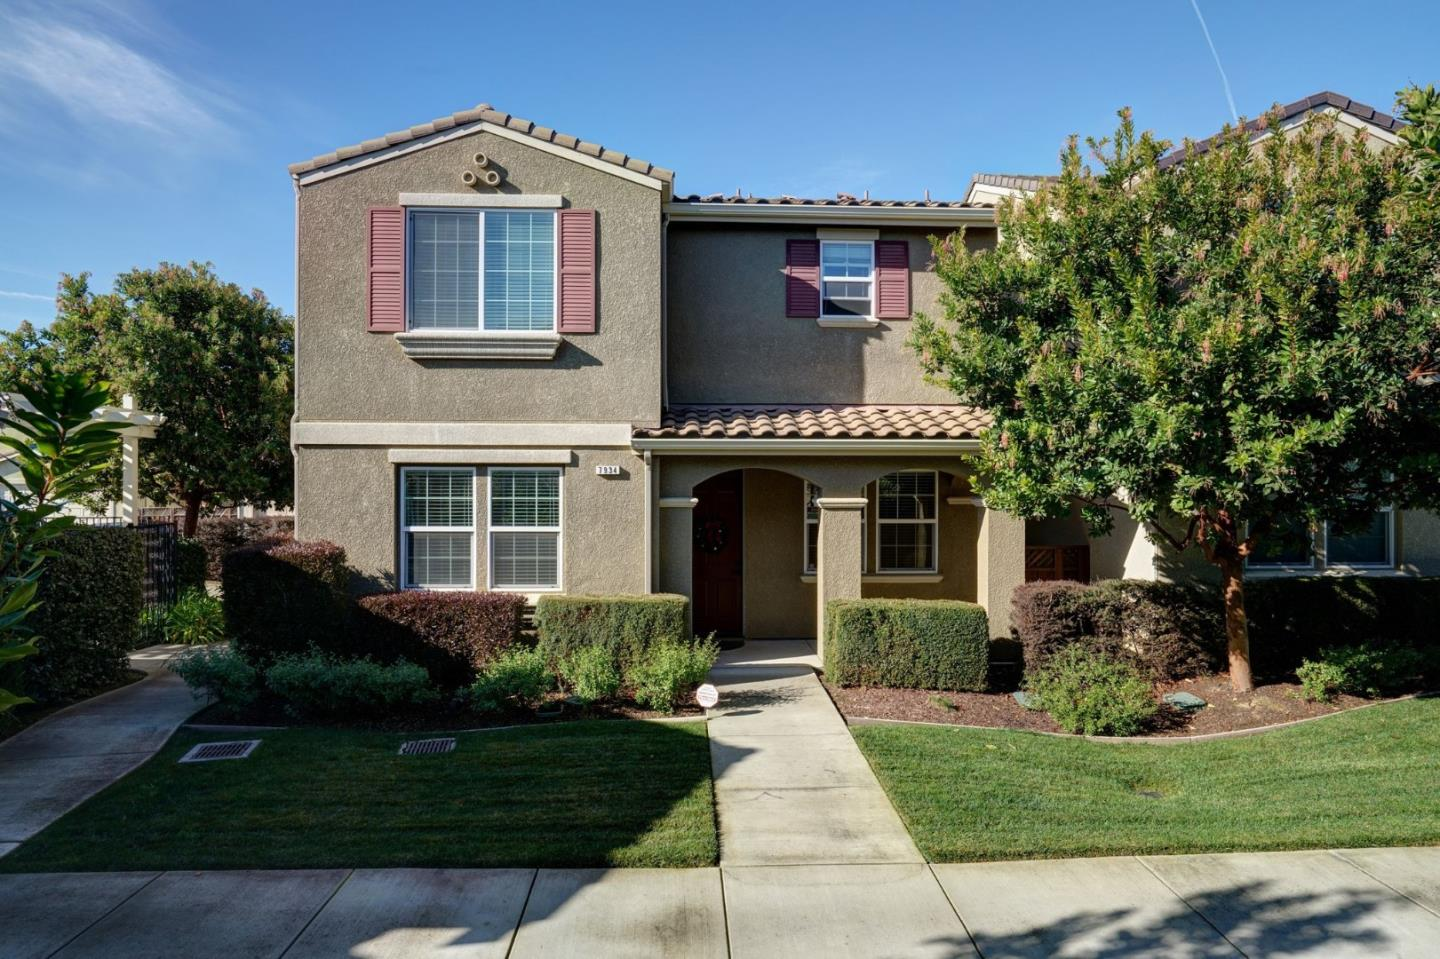 7934 SPANISH OAK CIR, GILROY, CA 95020